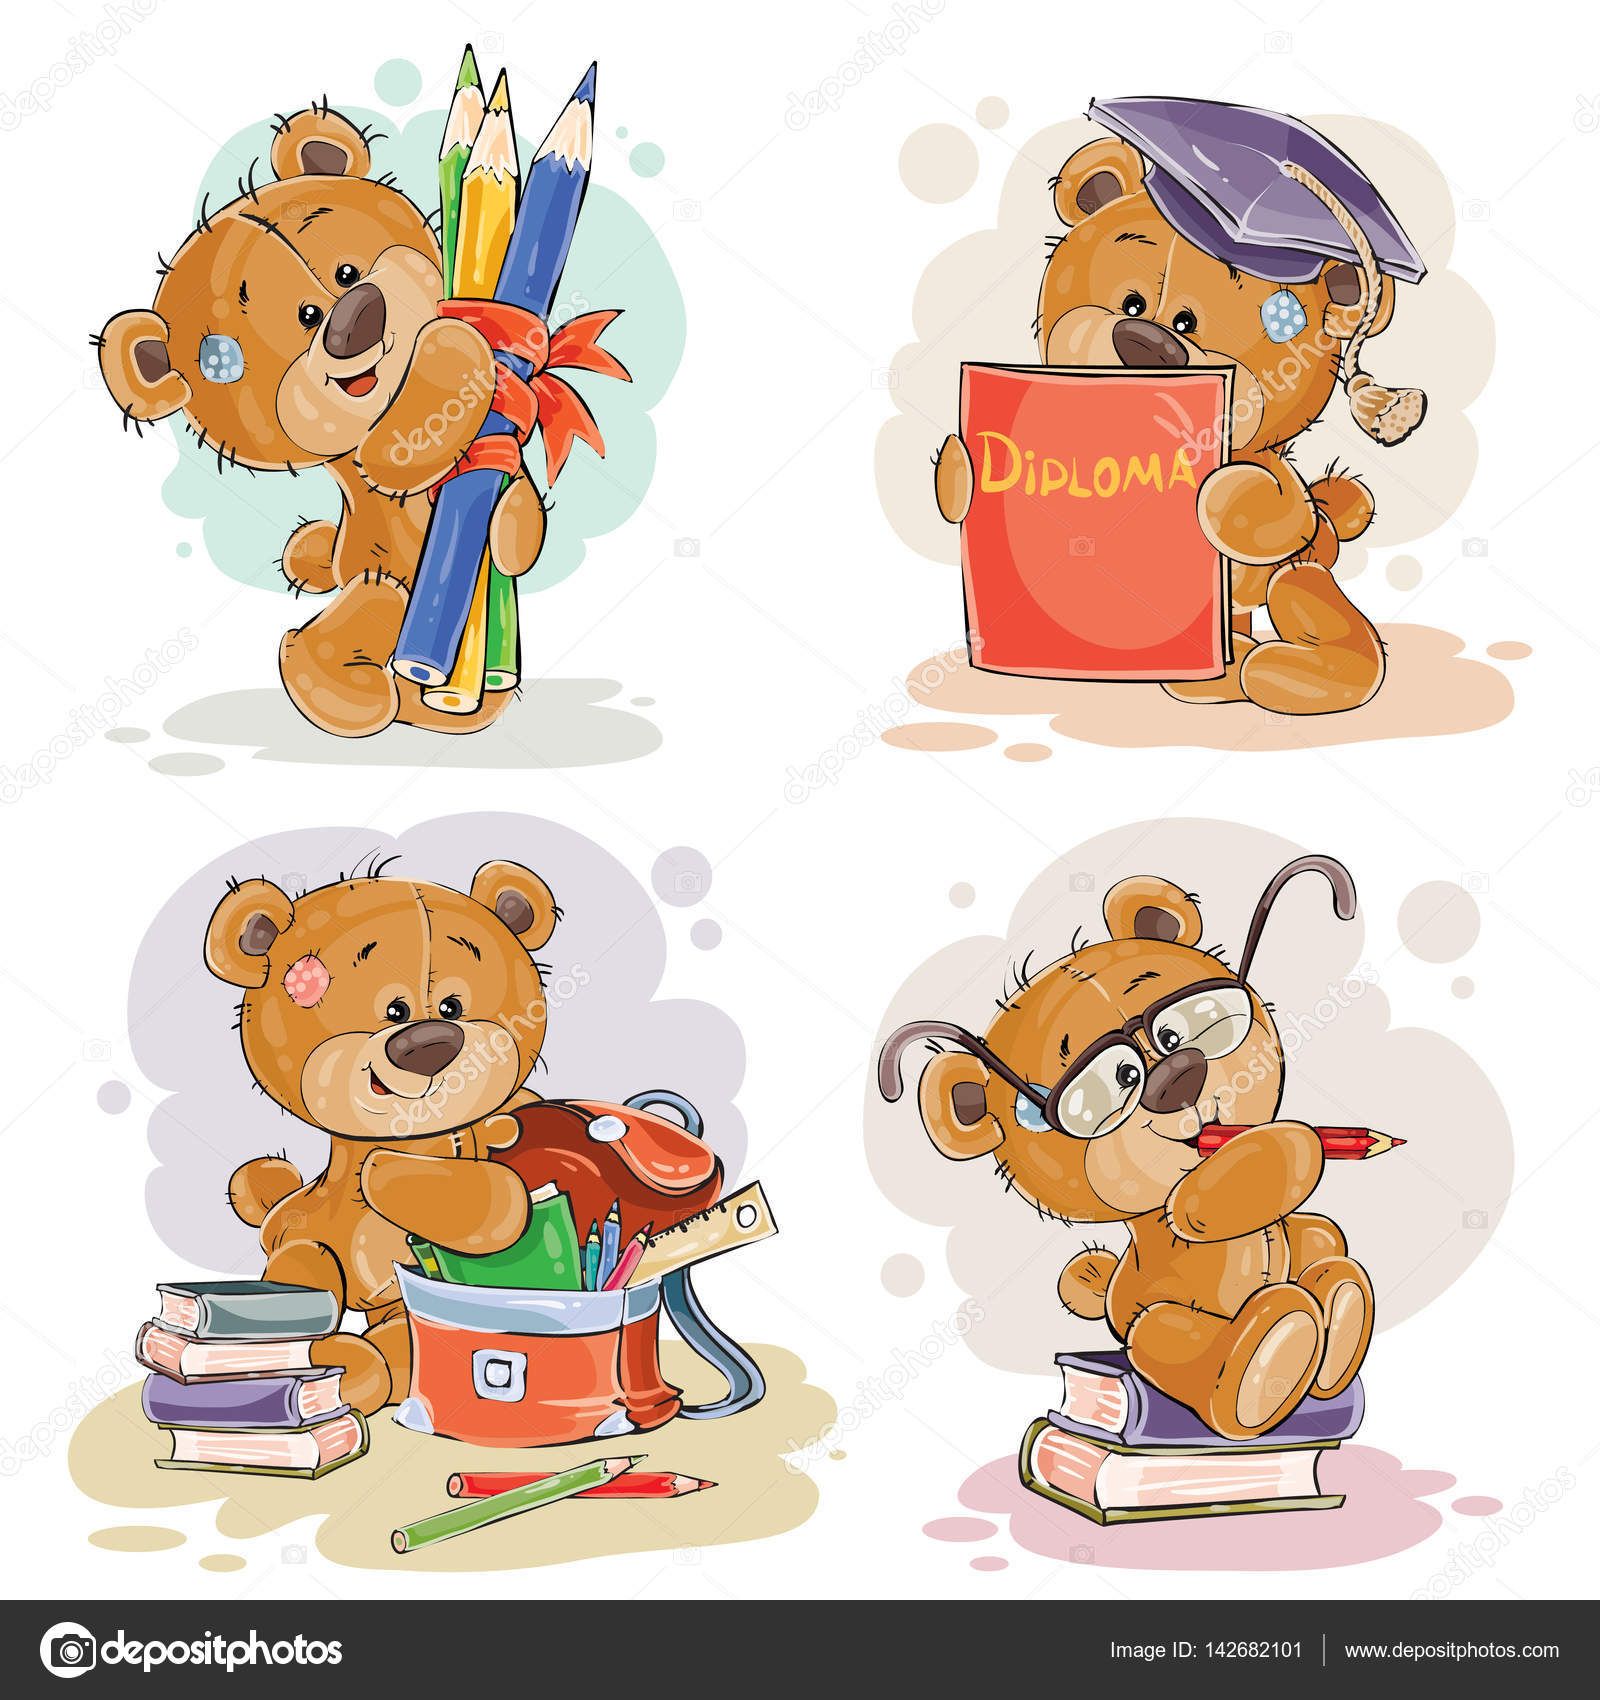 Funny illustrations for greeting cards and childrens books on the funny illustrations for greeting cards and childrens books on the topic of school and university education kristyandbryce Gallery